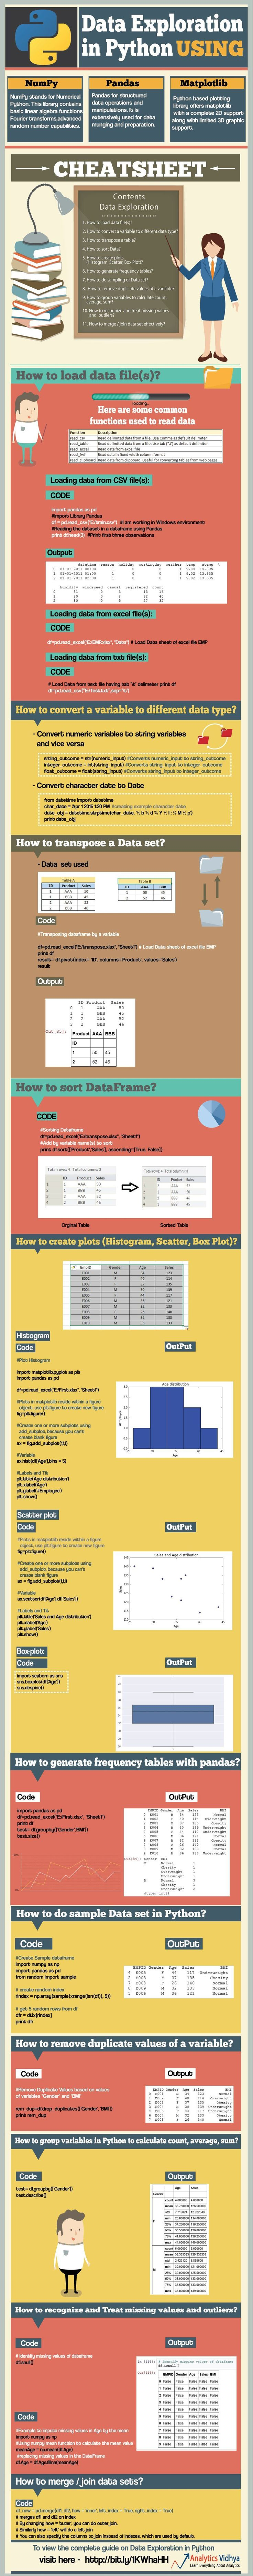 Infographic: Cheat Sheet On Data Exploration In Python | Data Analysis In Python